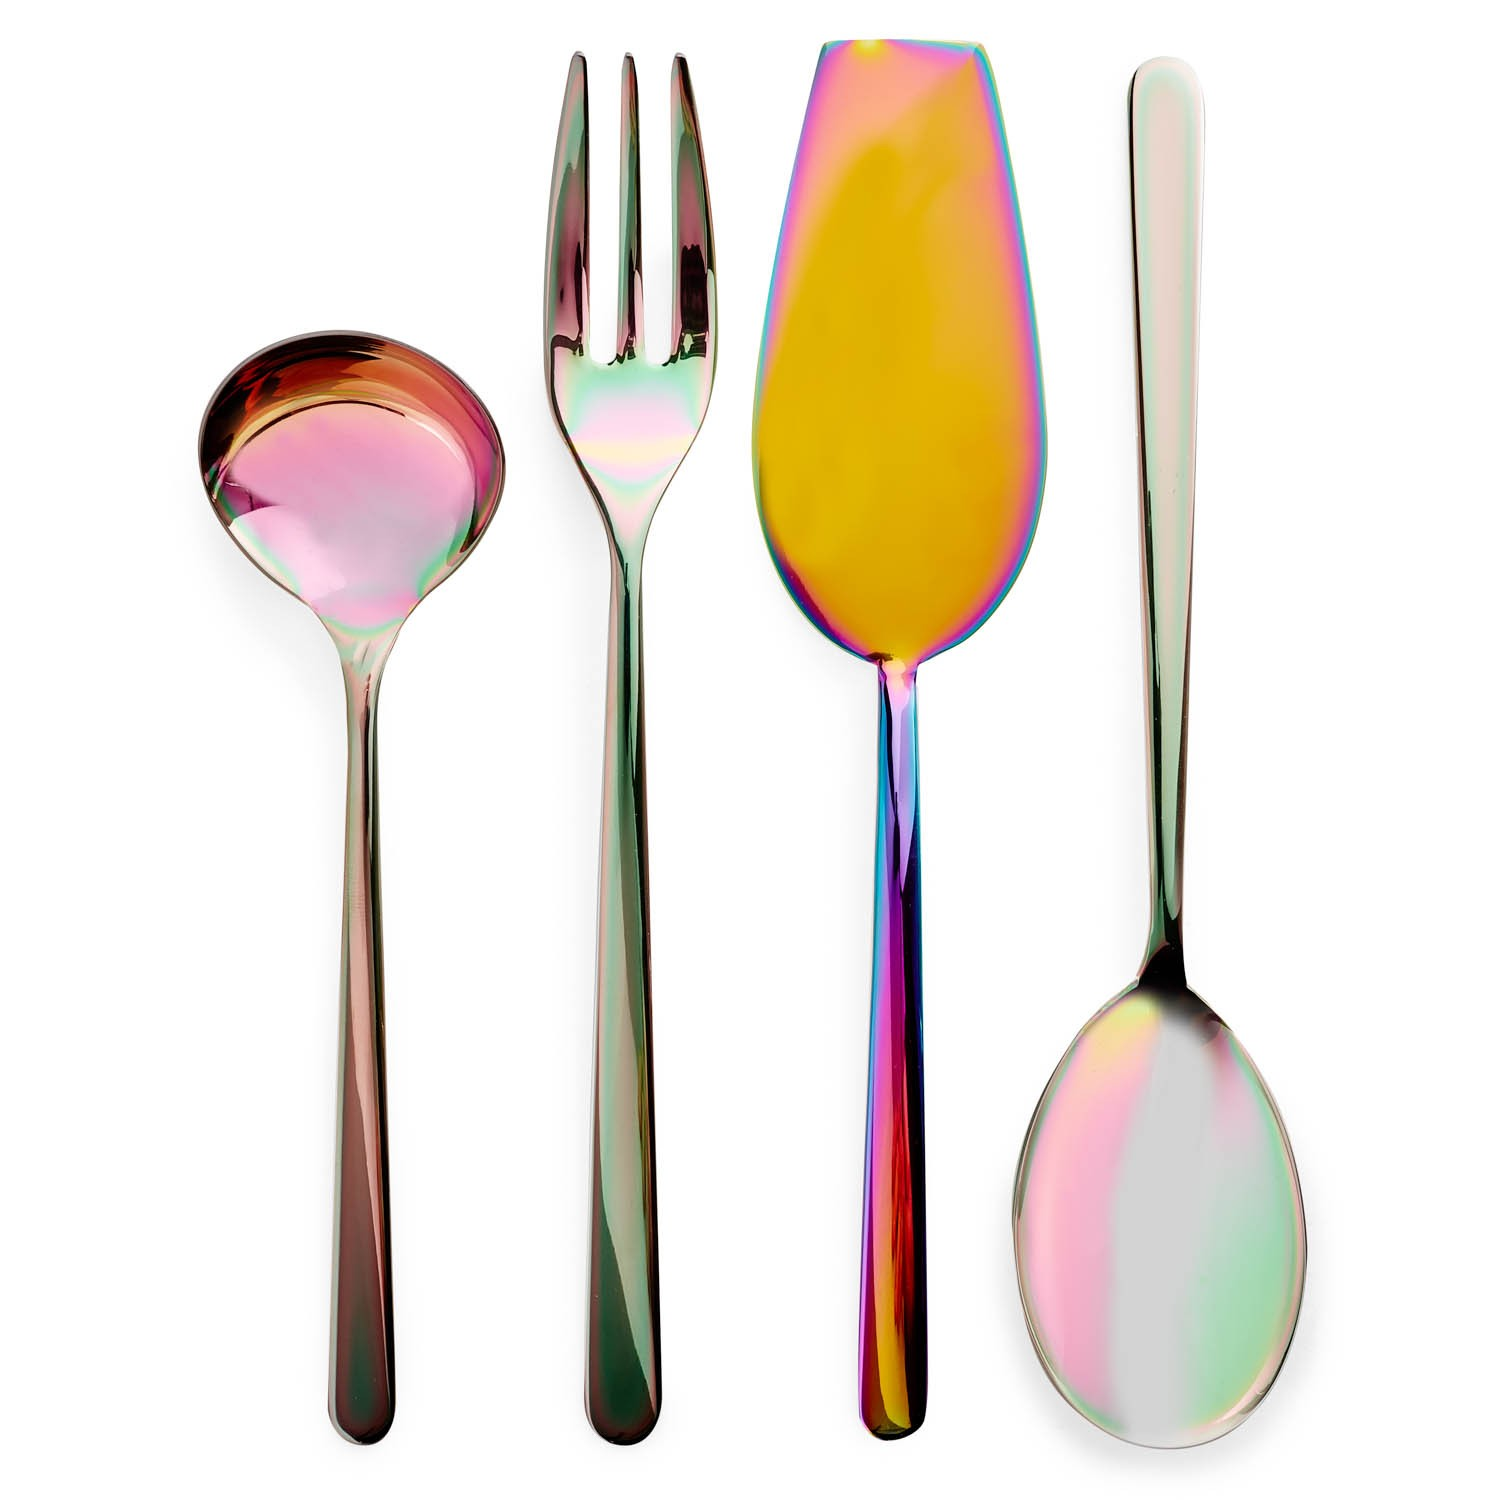 Iridescent serving utensils from ABC Carpet & Home